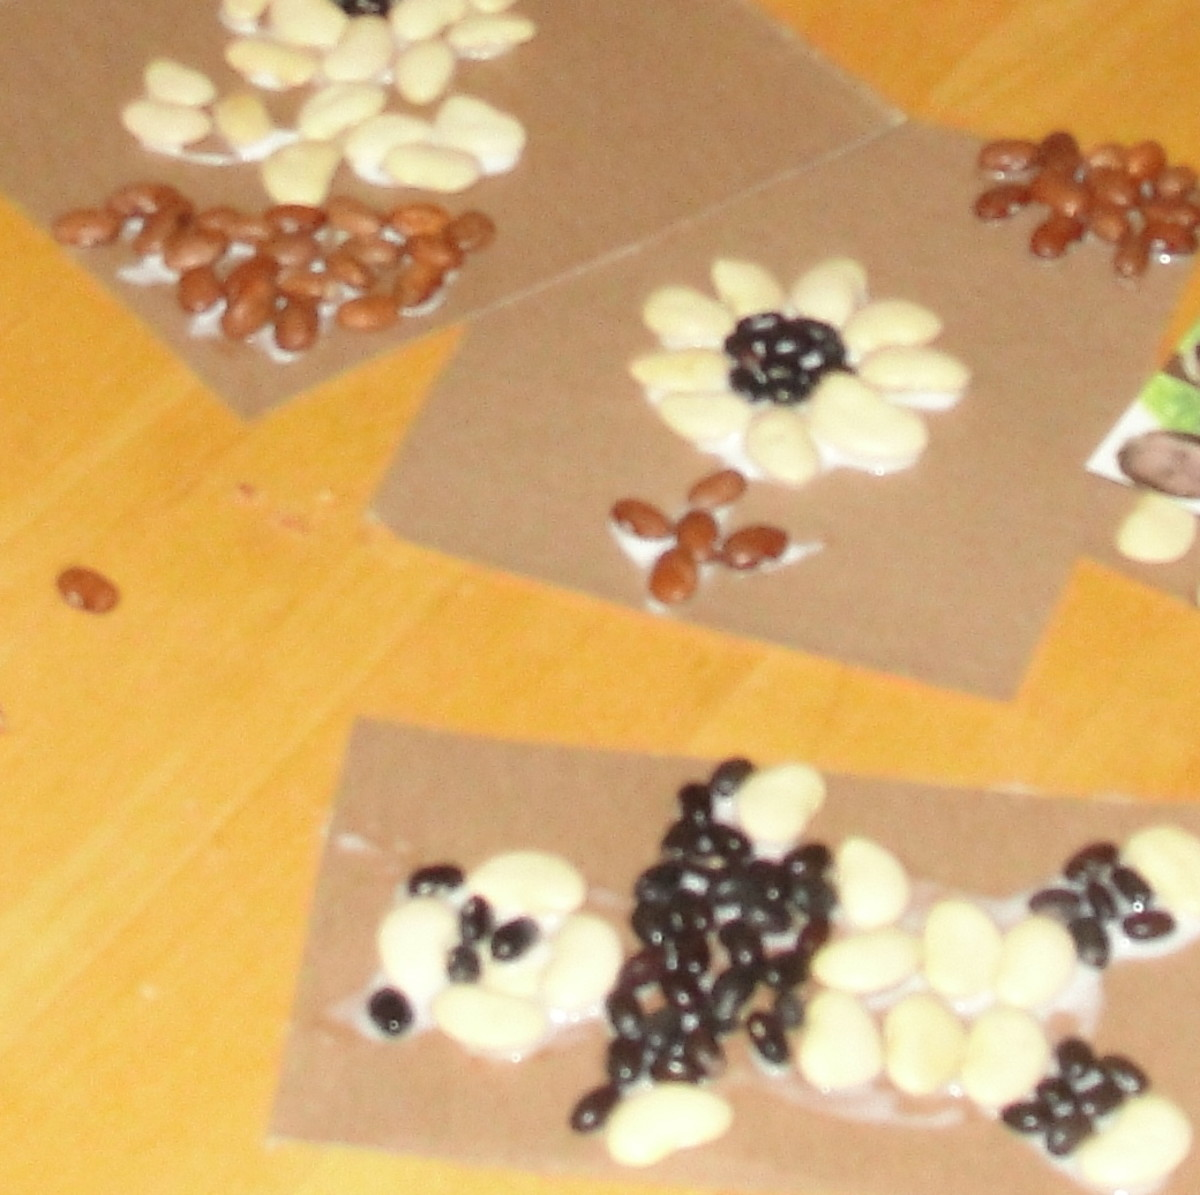 Making pictures using seeds